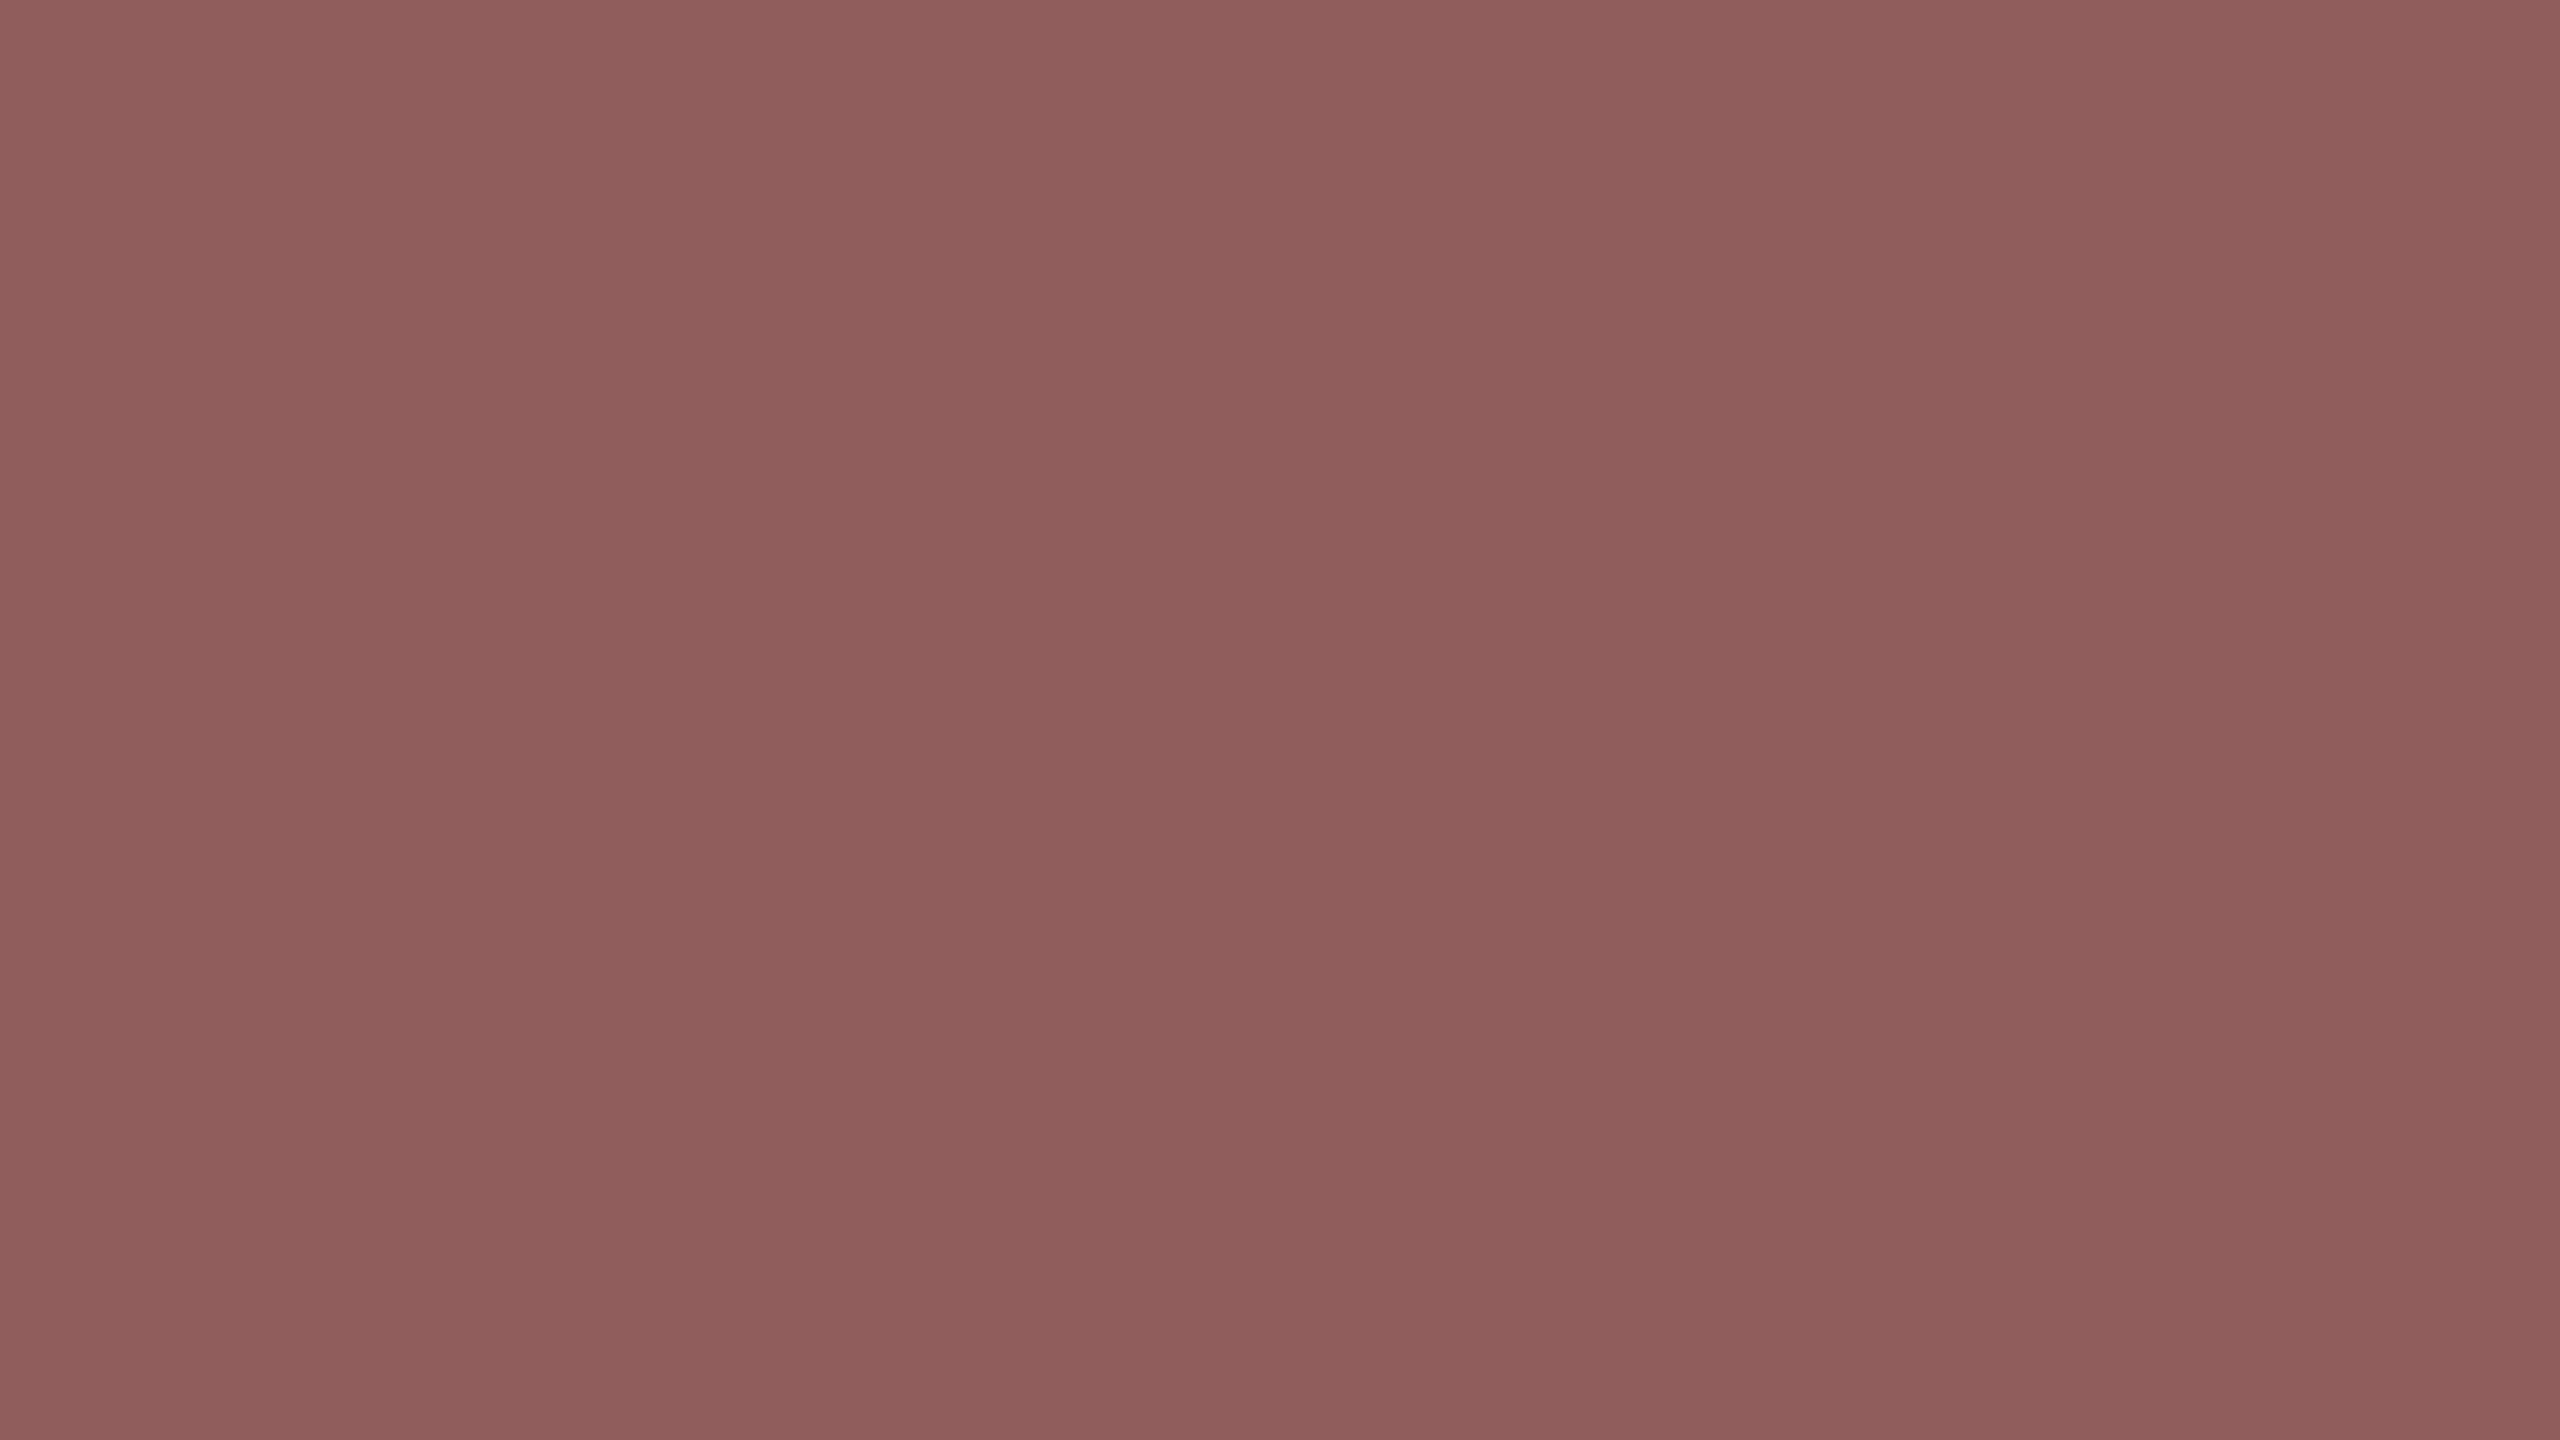 2560x1440 Rose Taupe Solid Color Background